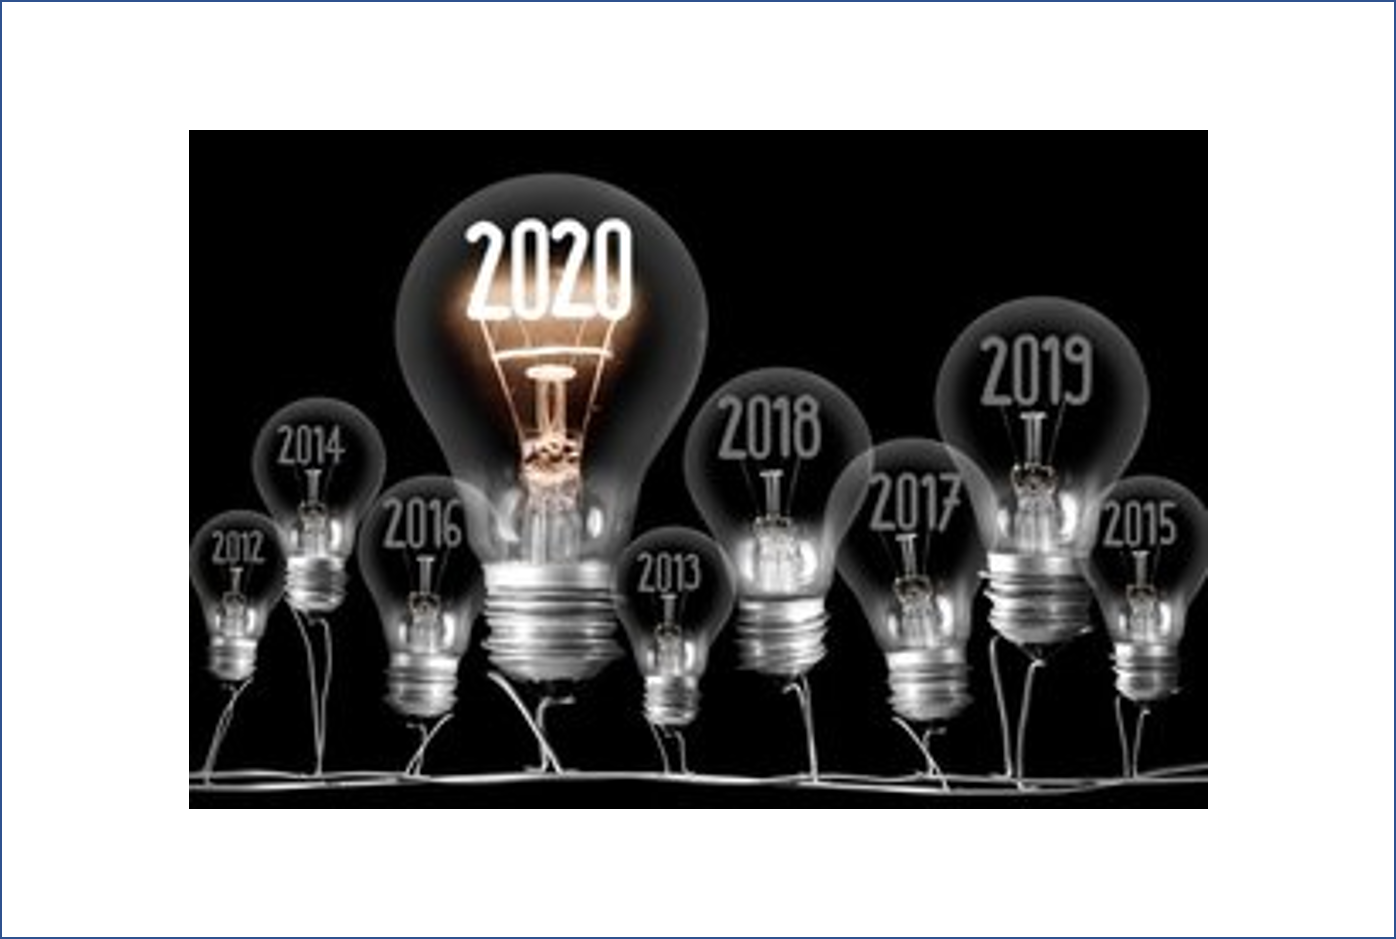 5 SUPPLY CHAIN MISTAKES TO AVOID IN 2020